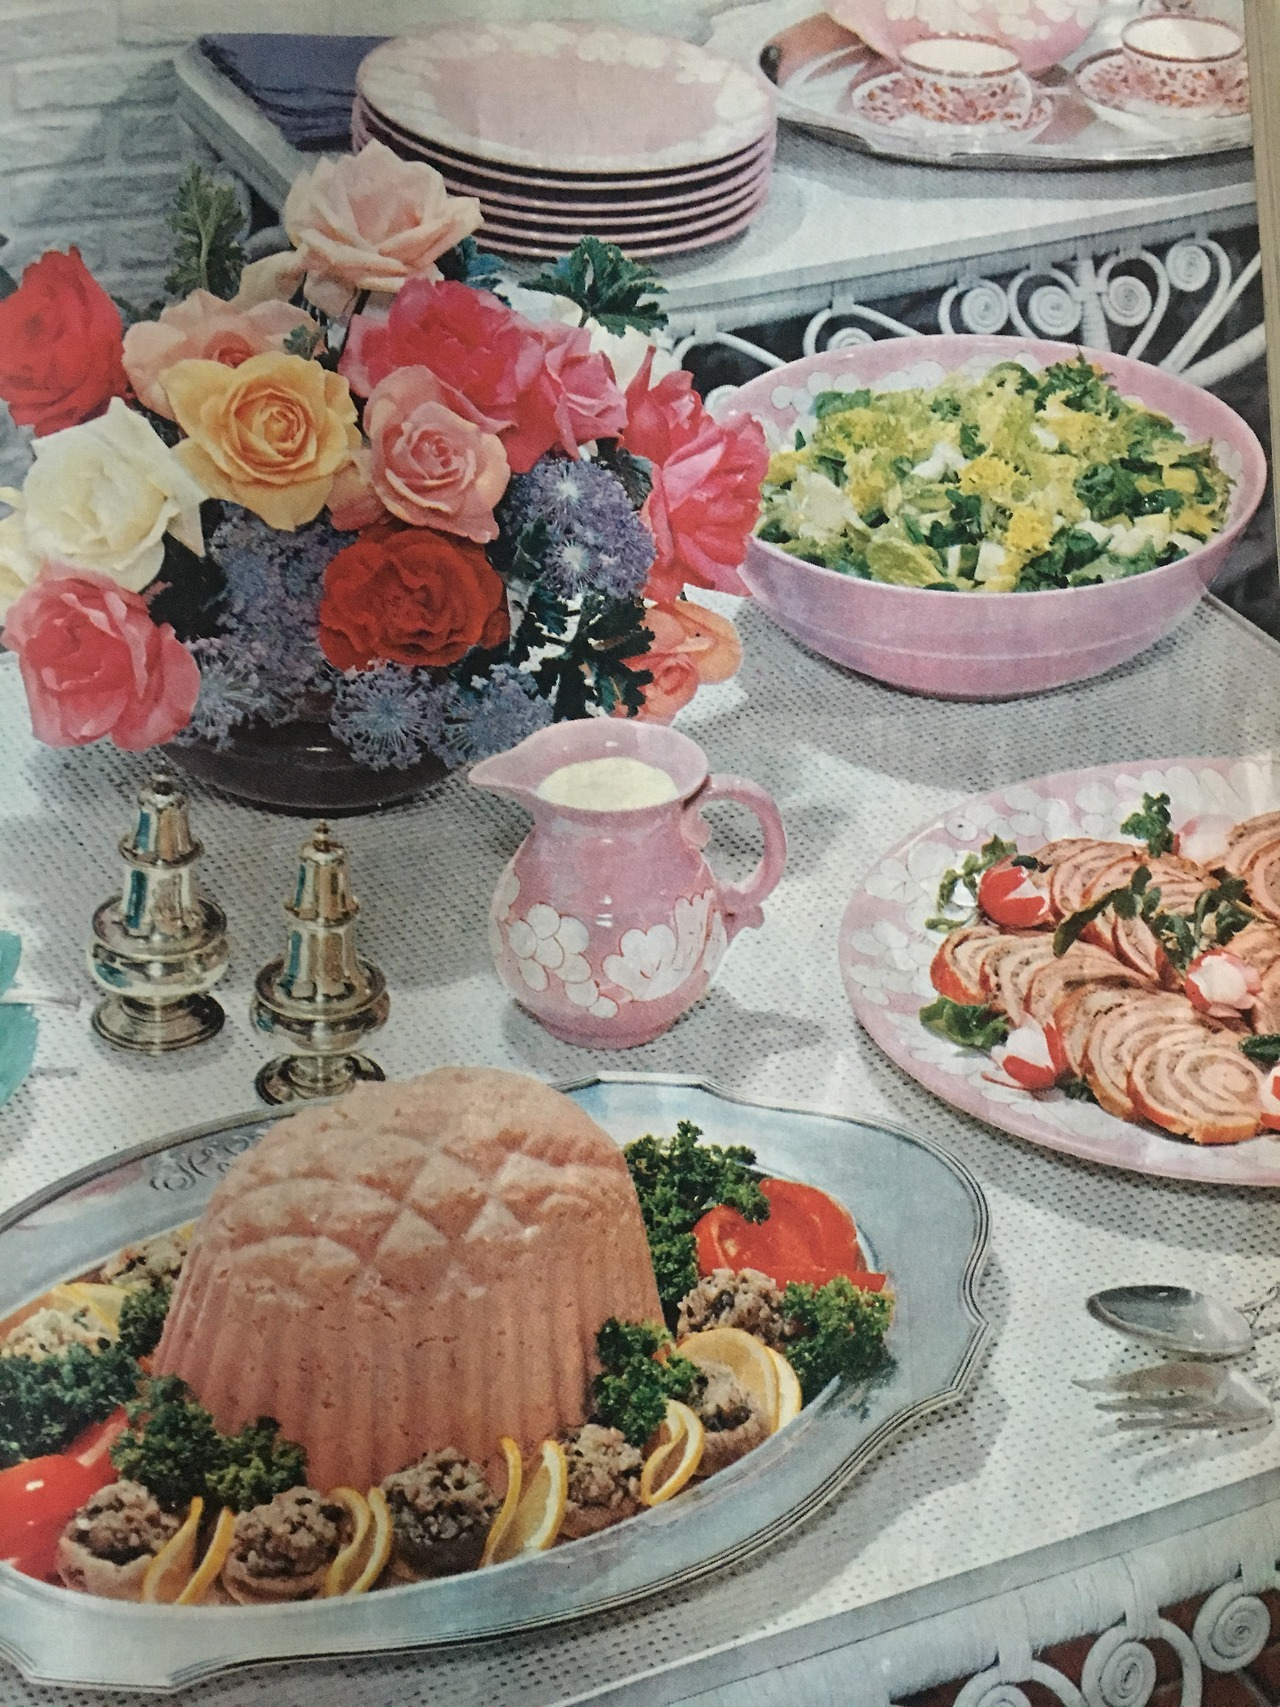 """""""Summer Garden Buffet"""".     Ladies Home Journal. June 1957.     Yesterday's prompt was """"Starts with F"""" so I decided to go with food and flowers from the fifties!"""